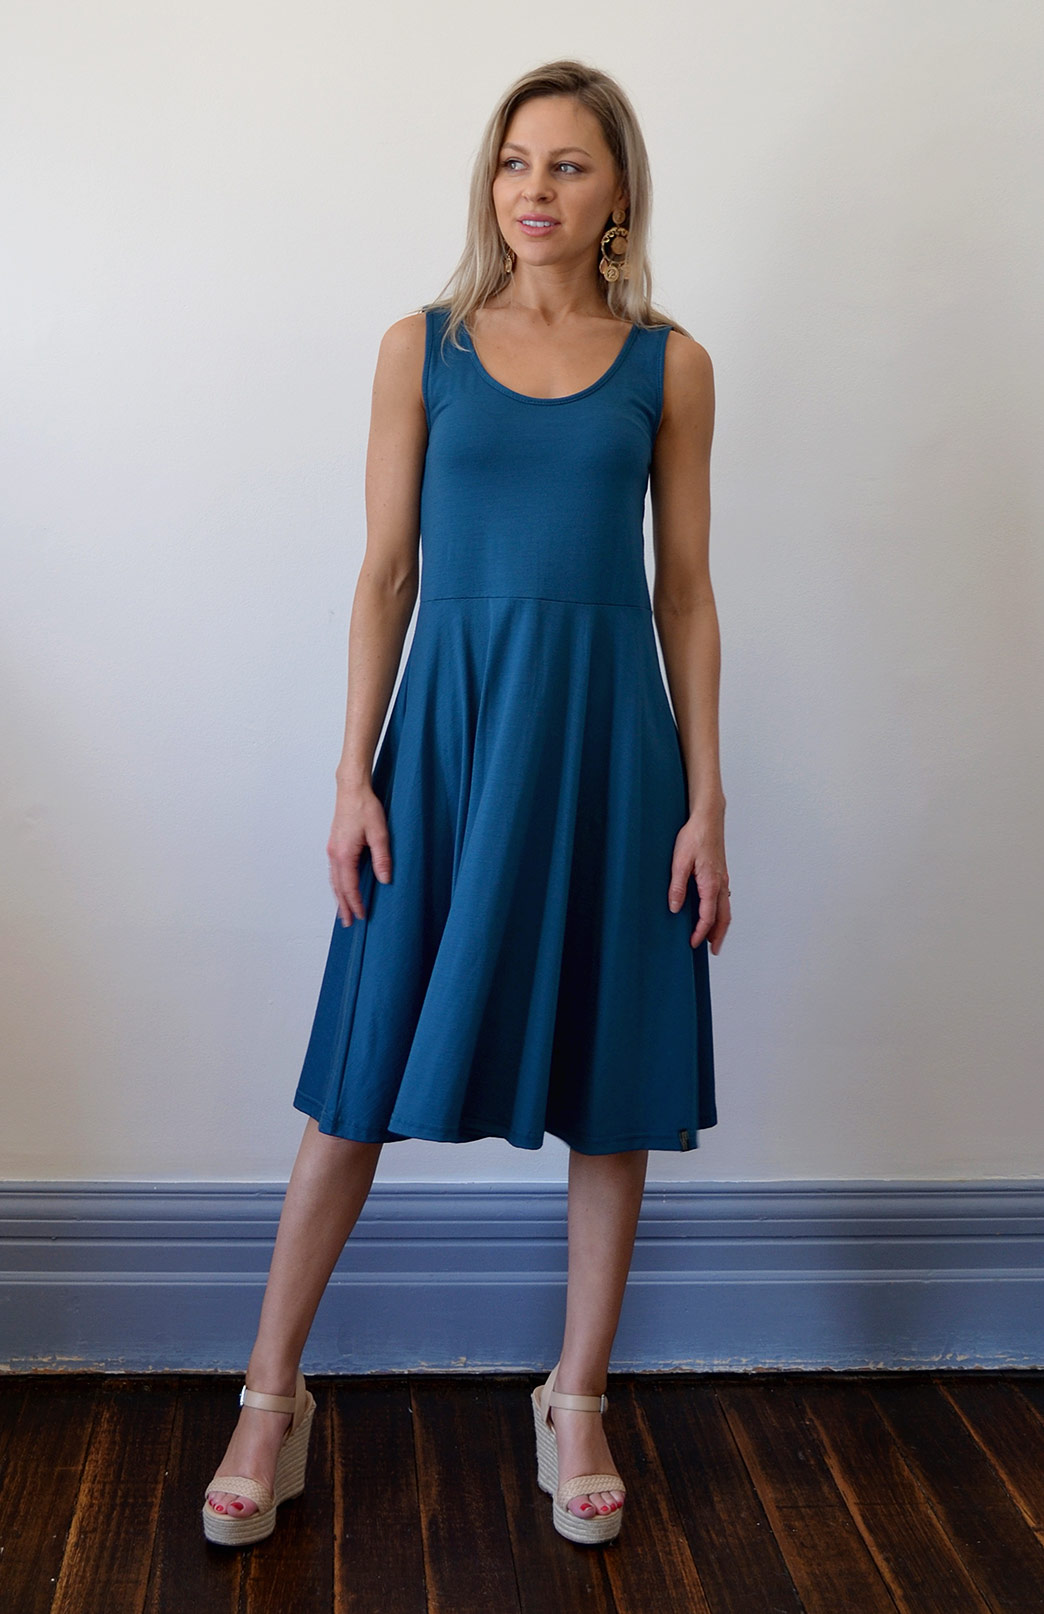 Jackie Dress - Sleeveless - Women's Storm Teal Sleeveless Jackie Dress with Waist Seam and Flared Skirt - Smitten Merino Tasmania Australia